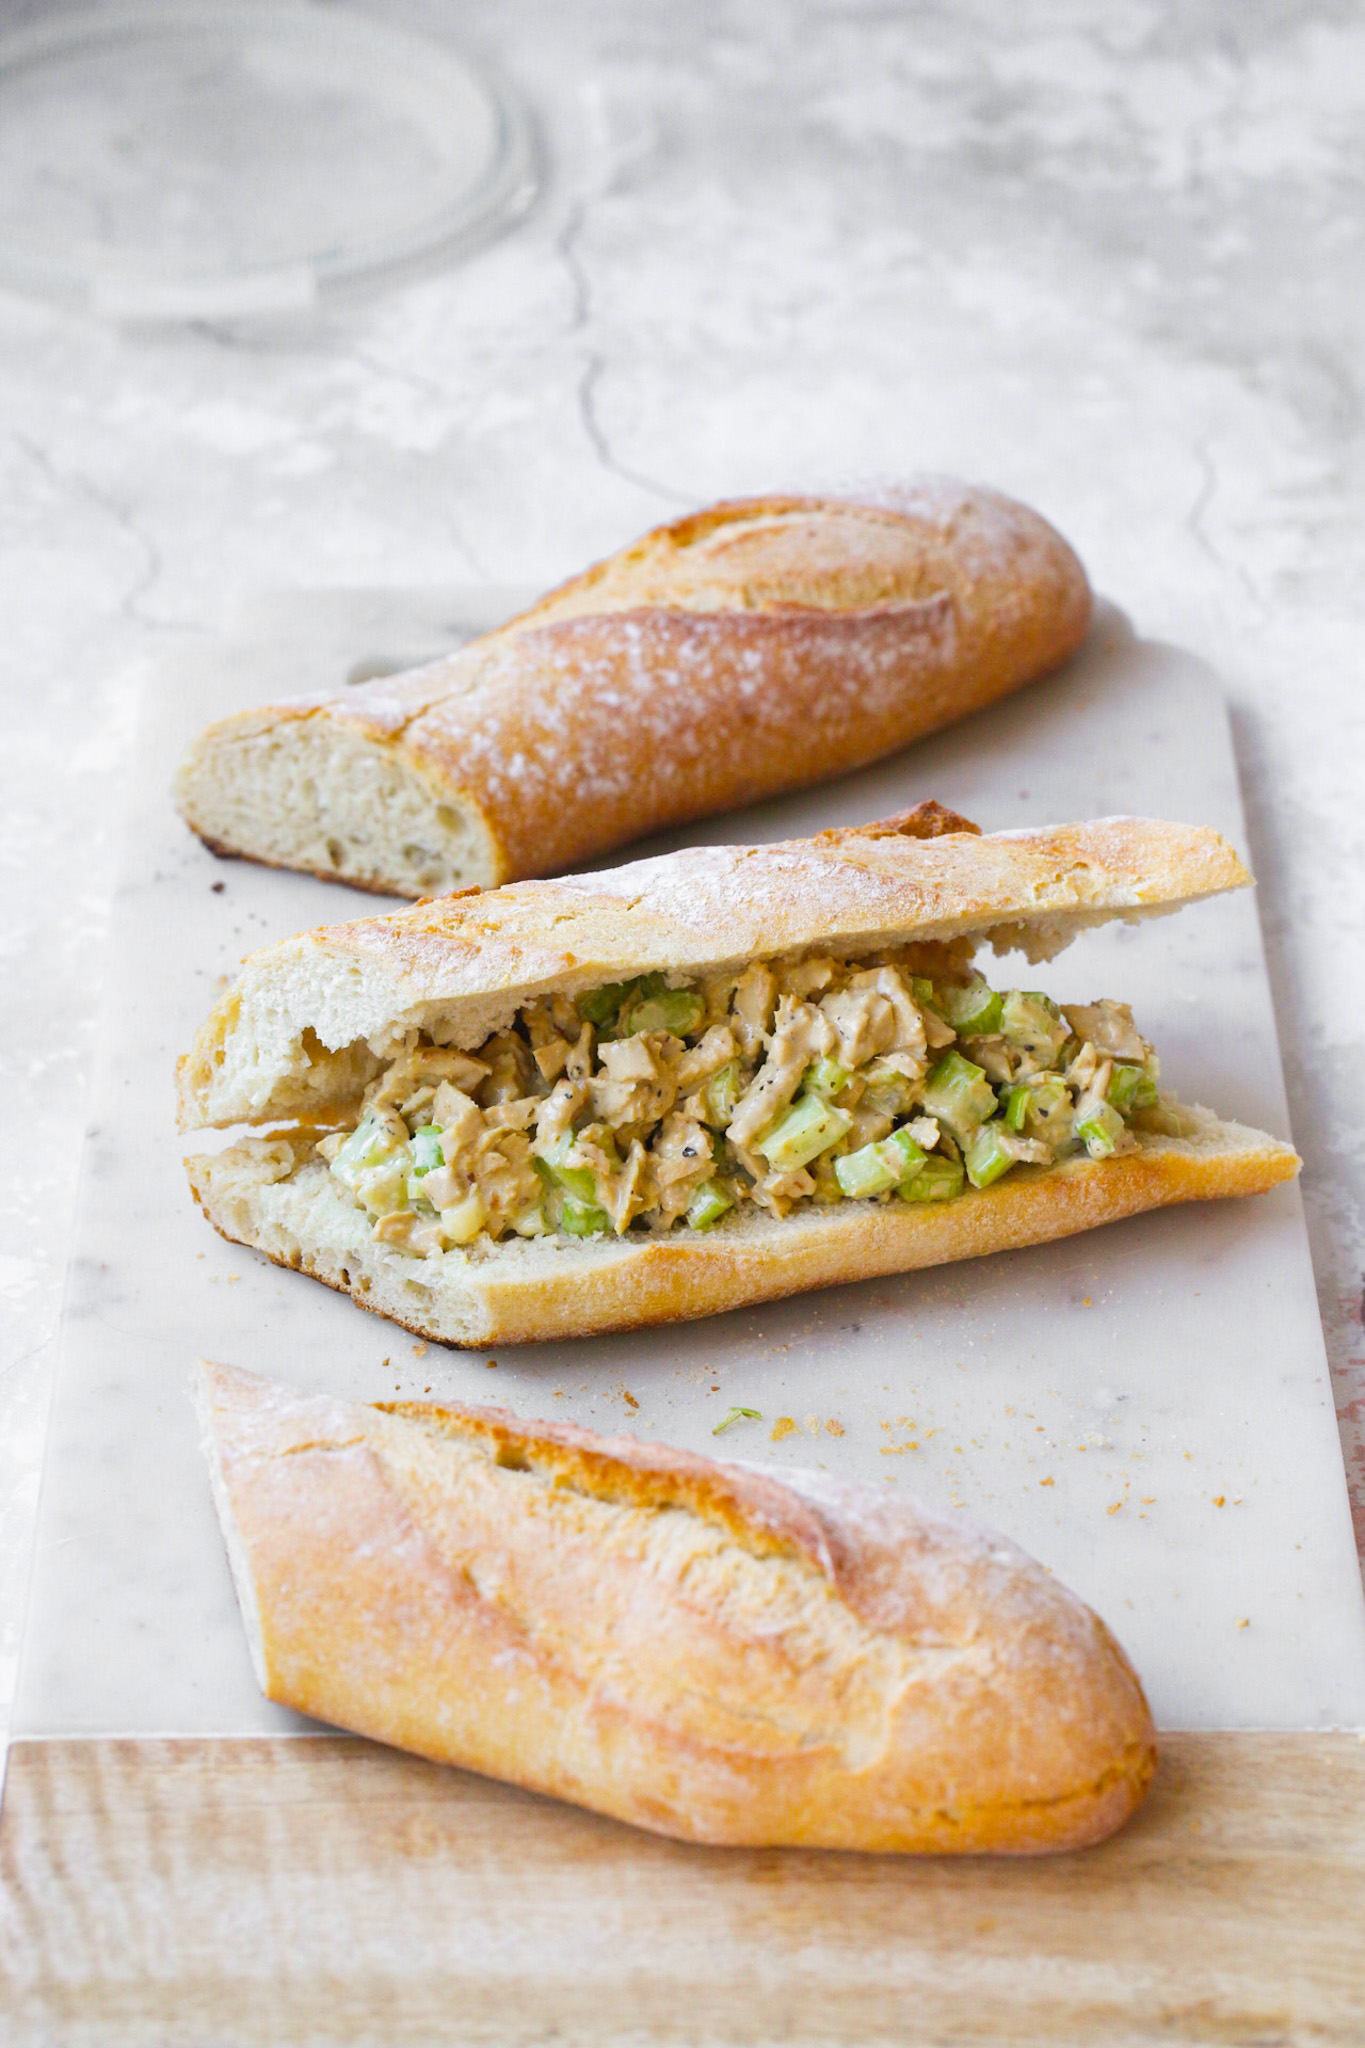 french bread with chick'n salad for lunch